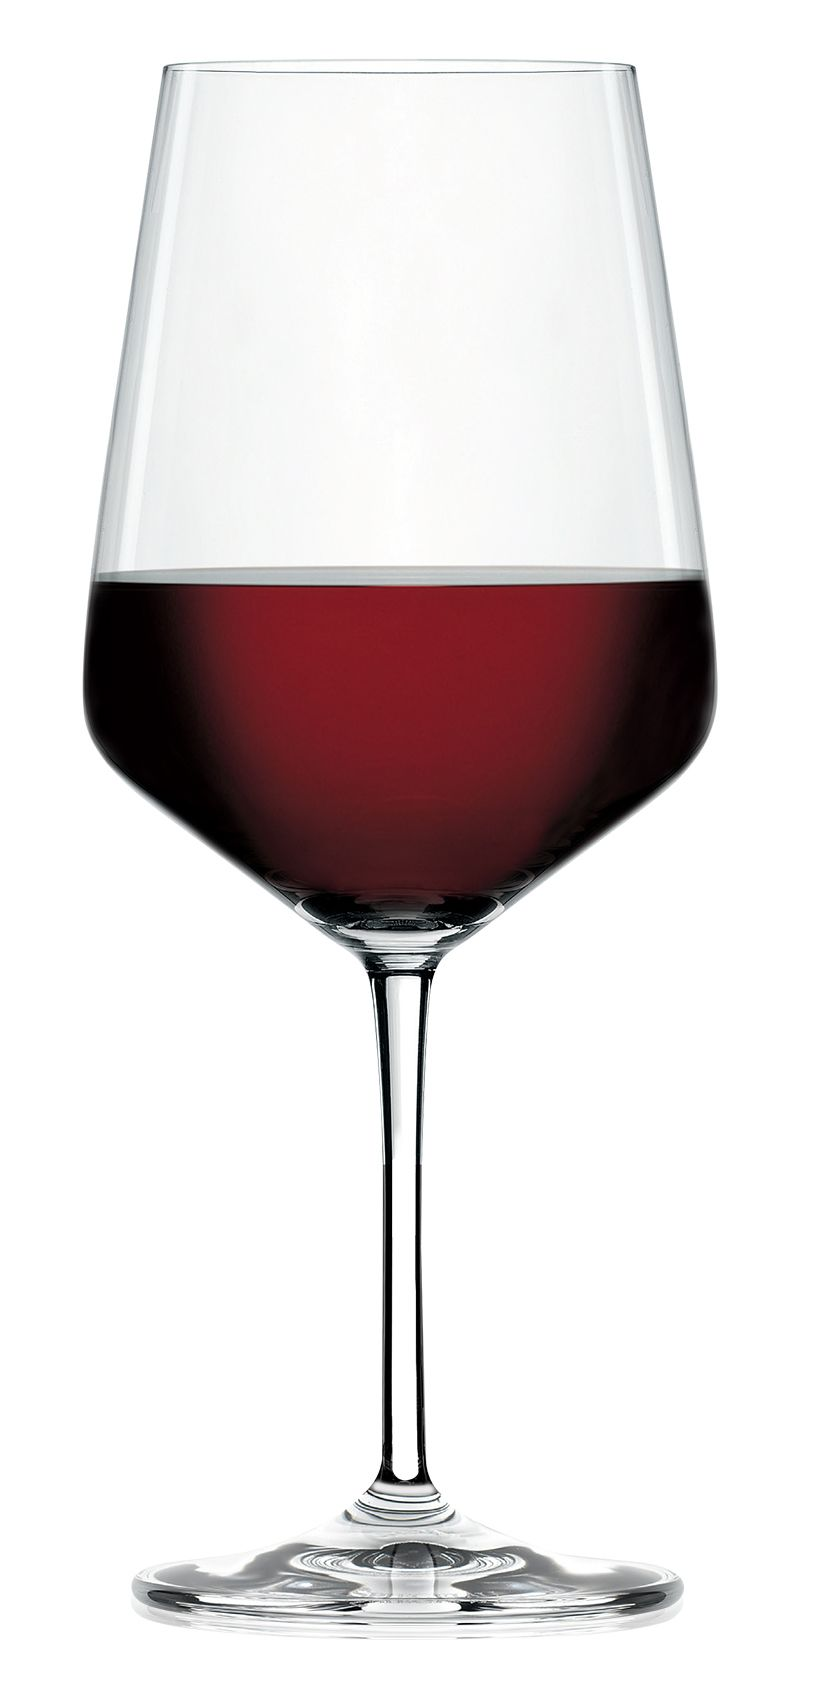 wine.com Spiegelau Red Wine Glasses (Set of 4)  Gift Product Image